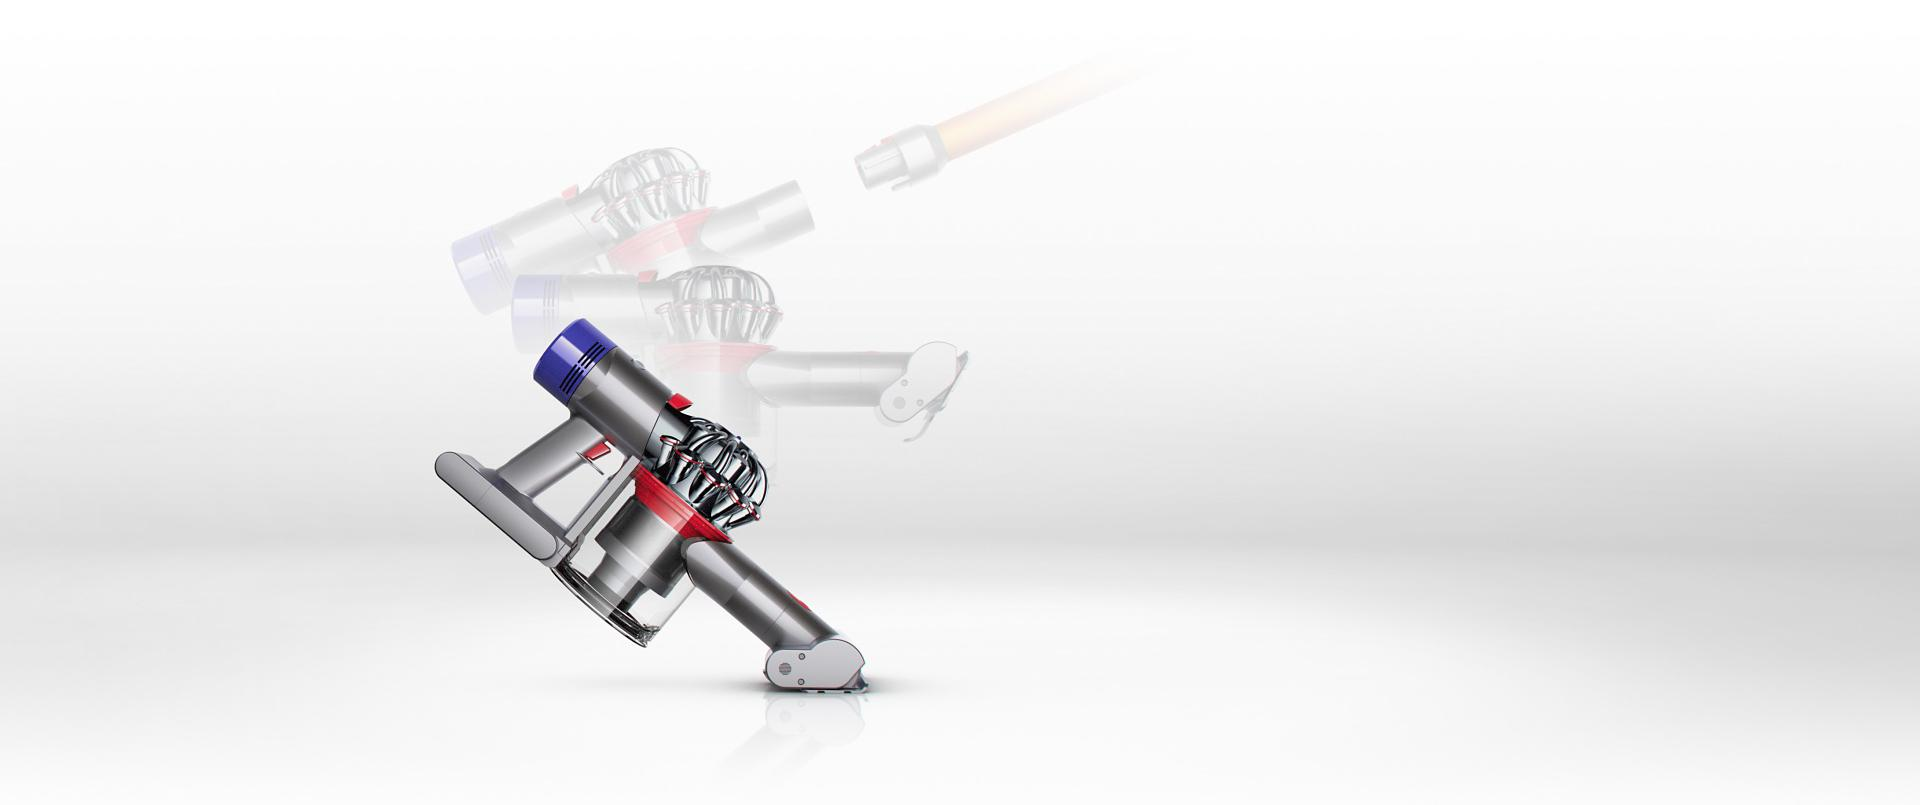 Dyson V8 being turned into a handheld vacuum